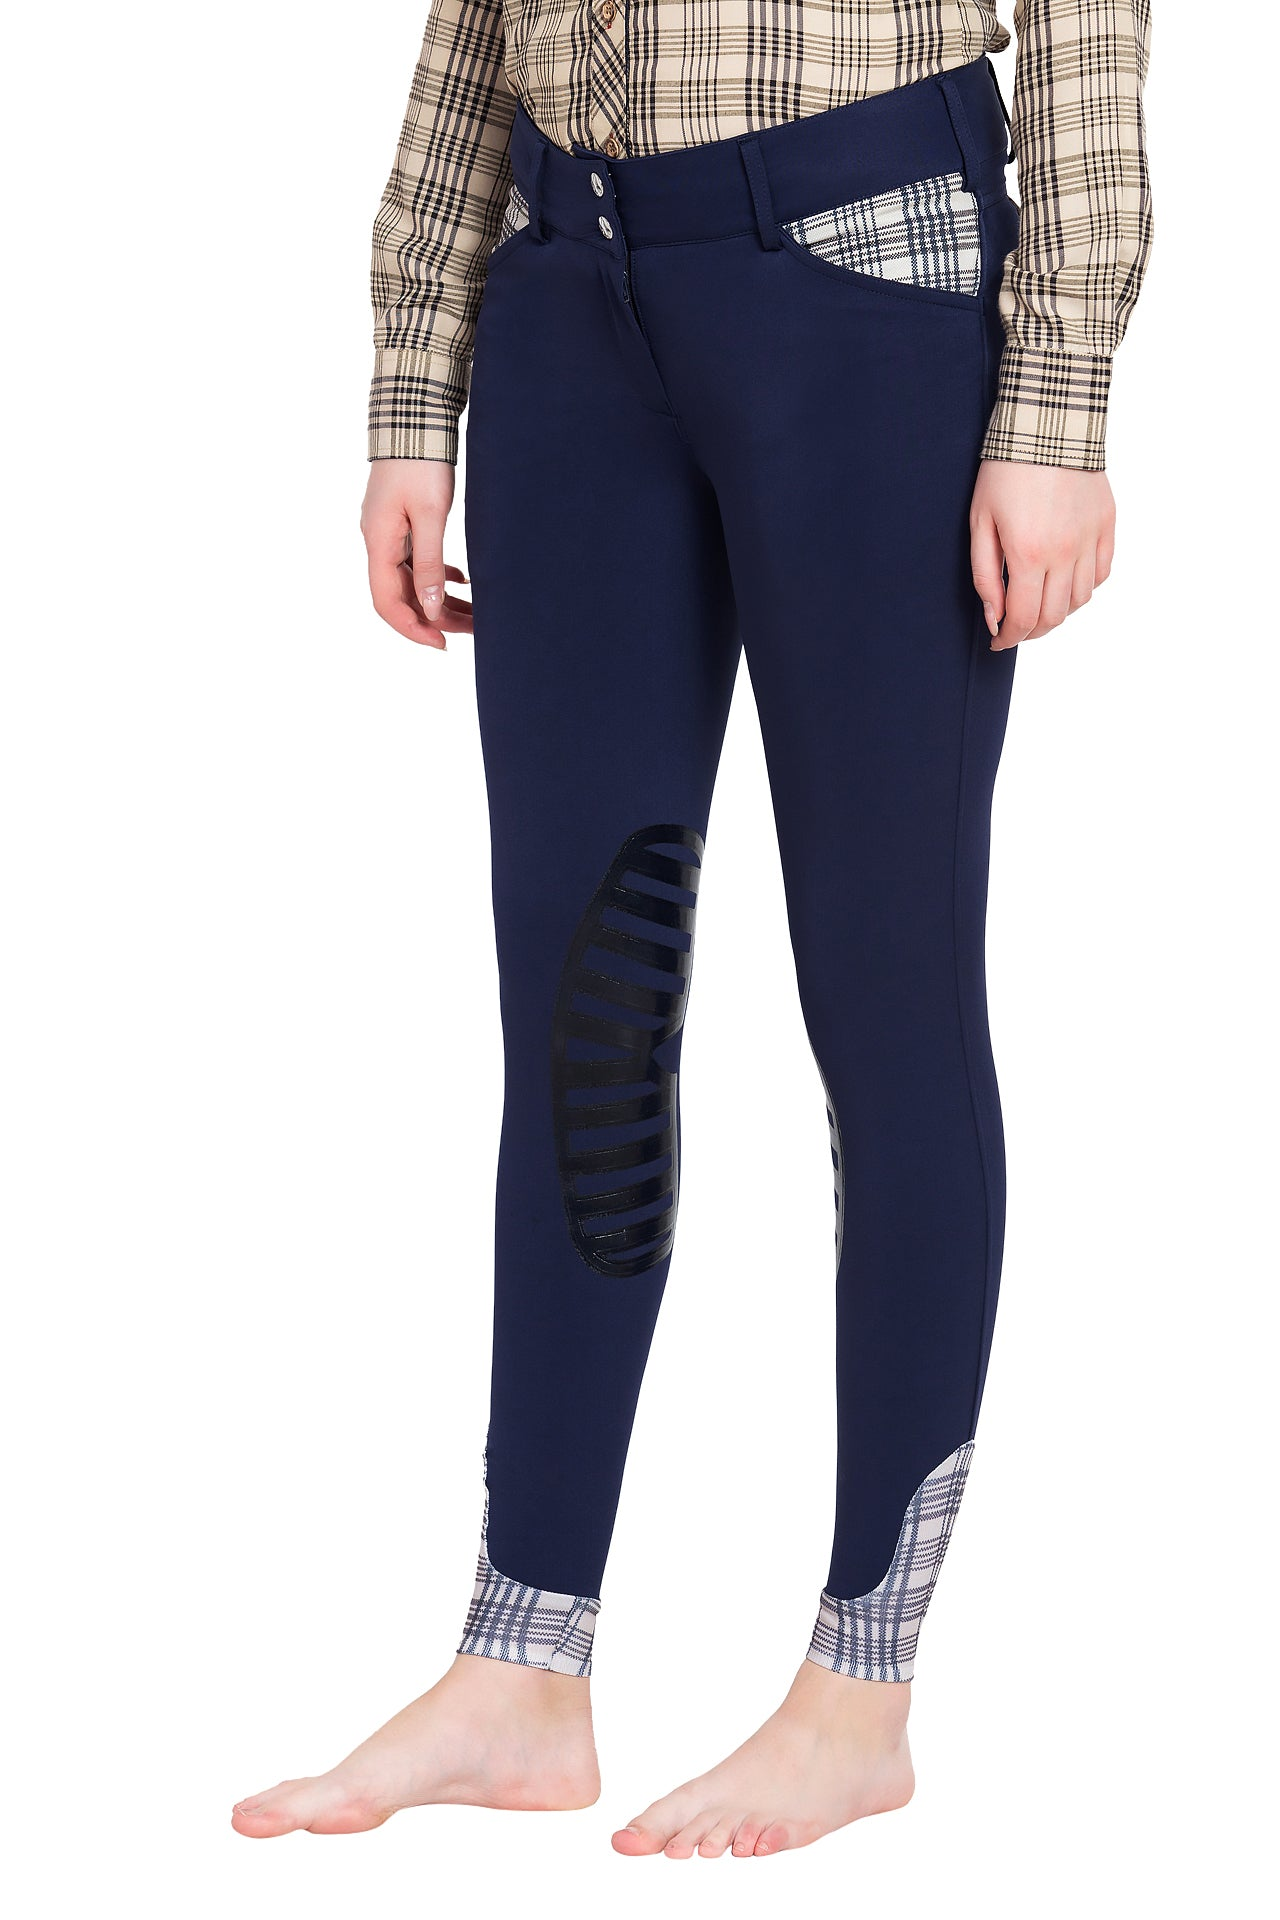 Baker Ladies Pro Silicone Knee Patch Breeches - Baker - Breeches.com